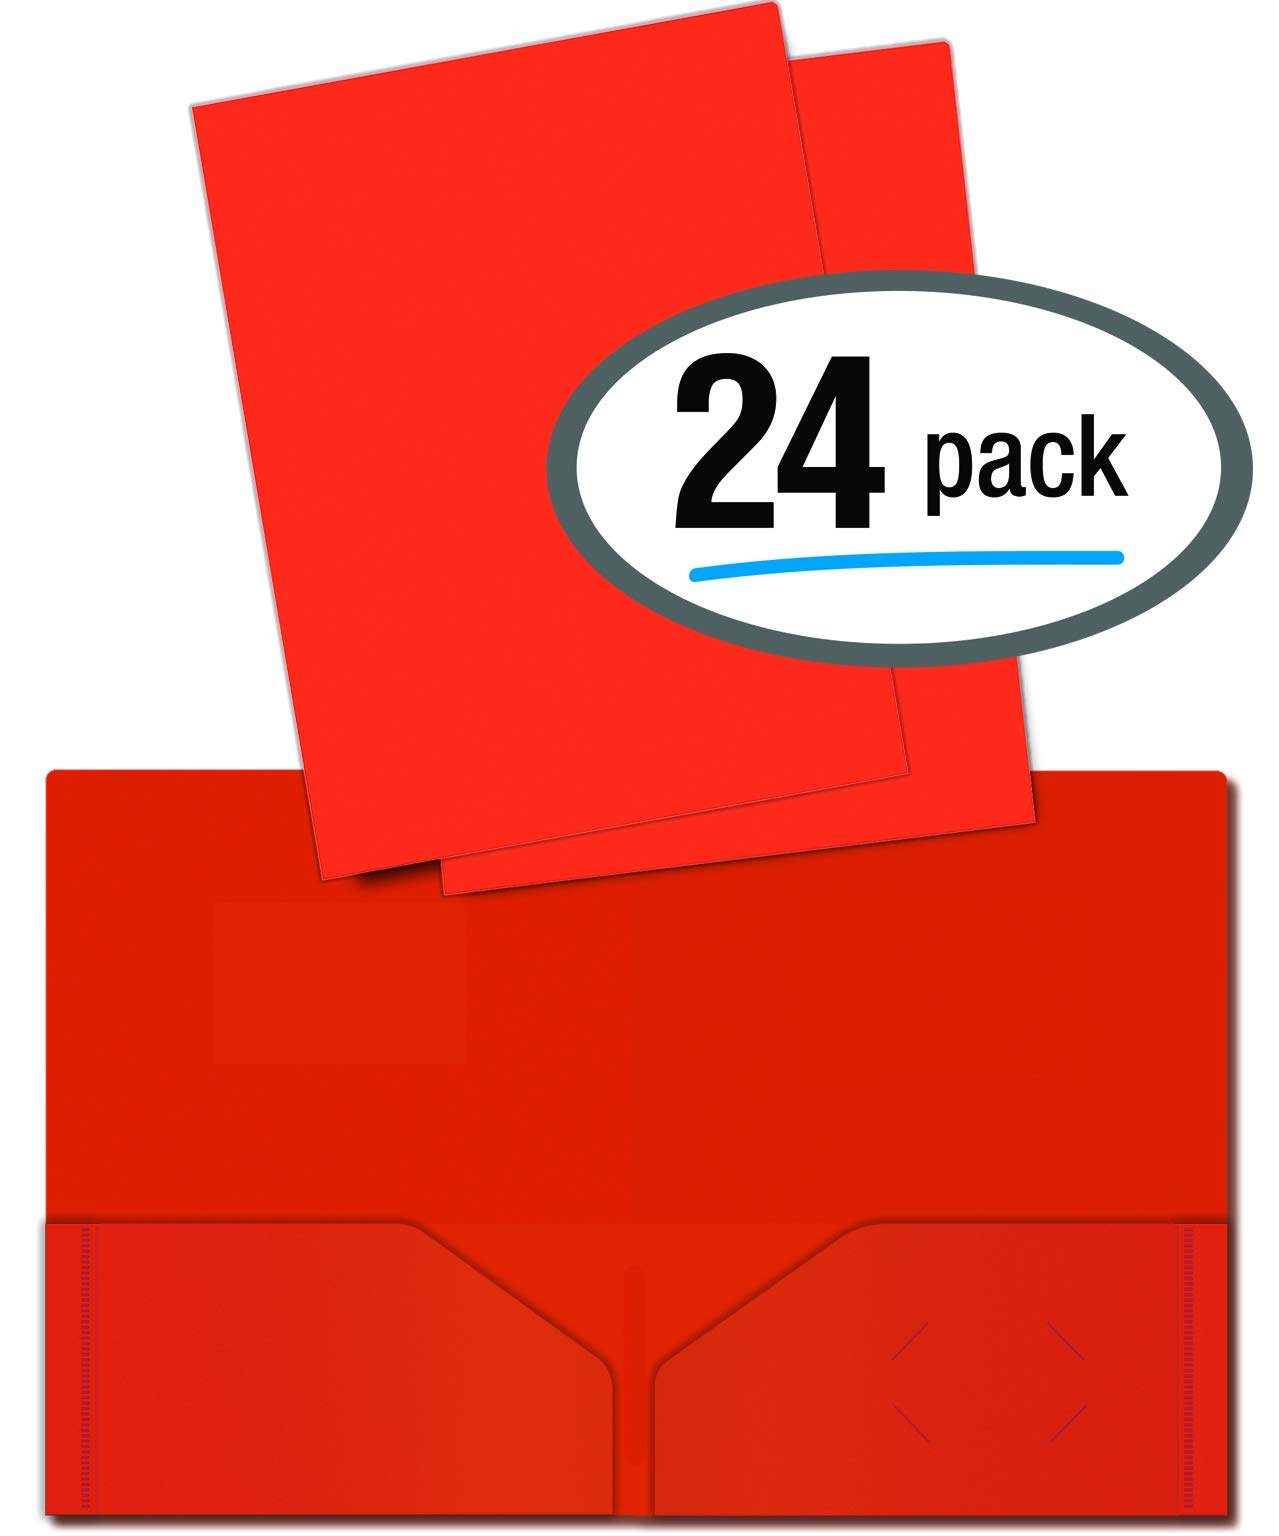 Heavyweight Plastic 2 Pocket Portfolio Folder, Letter Size Poly Folders by Better Office Products, 24 Pack (Orange) by Better Office Products